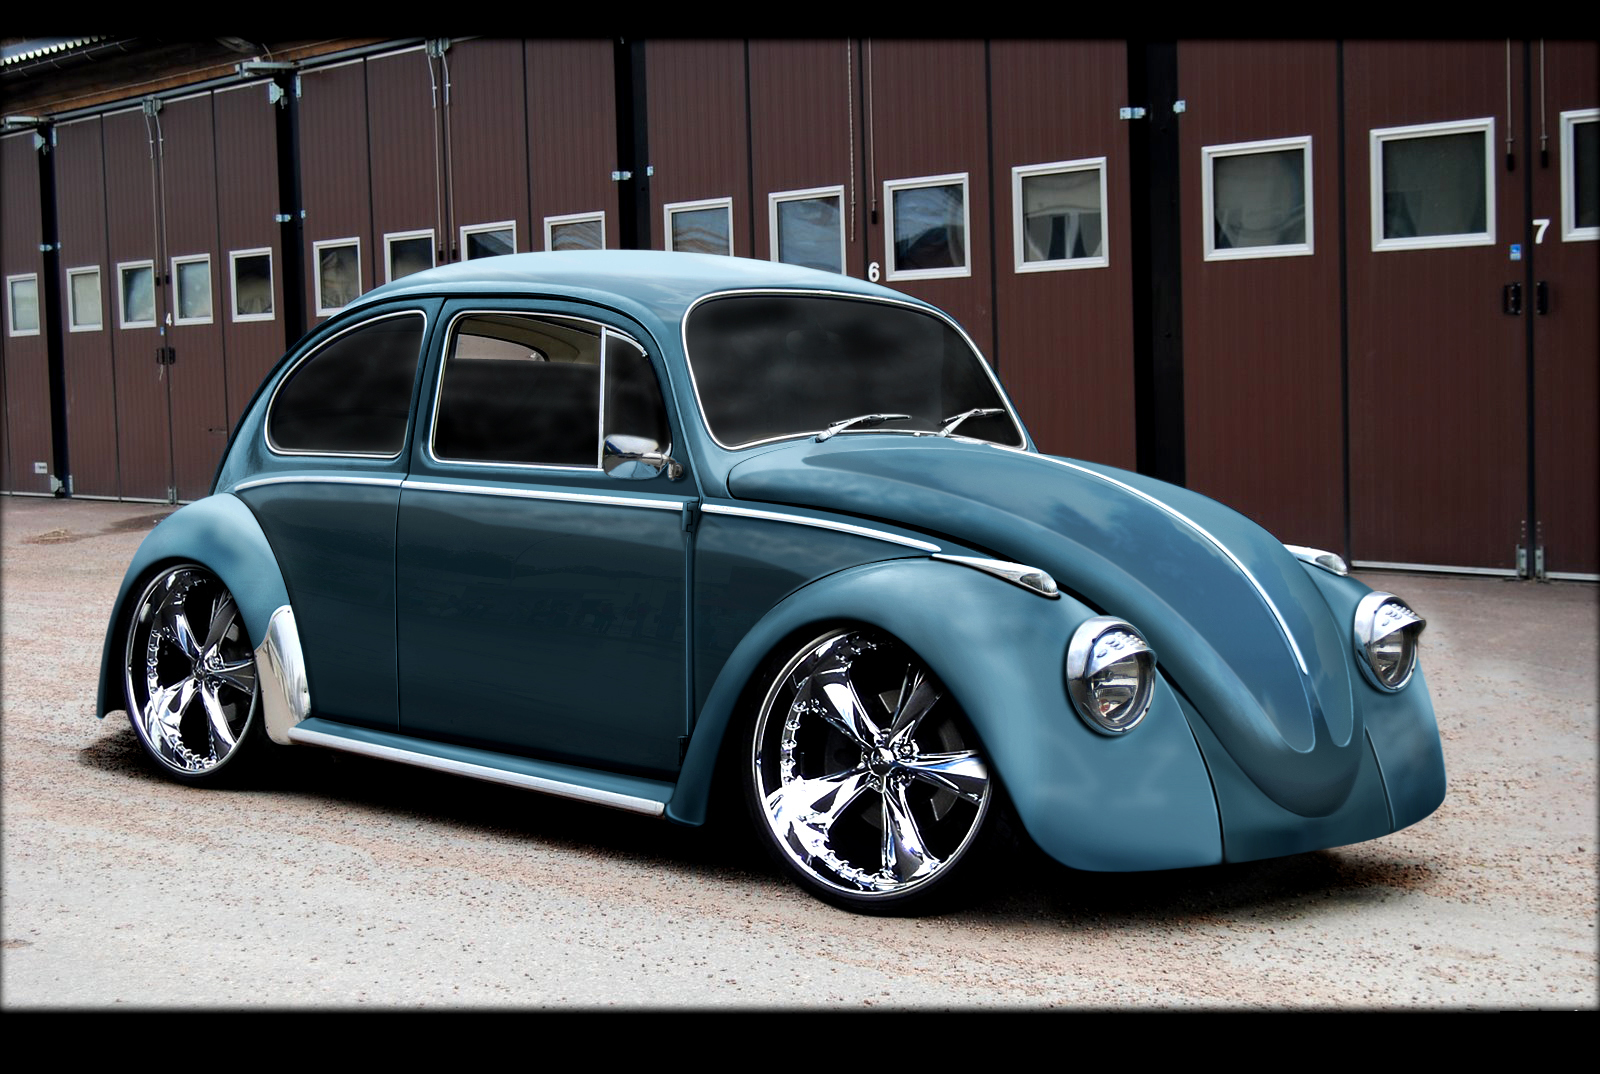 Volks' Beetle by dxprojects on DeviantArt